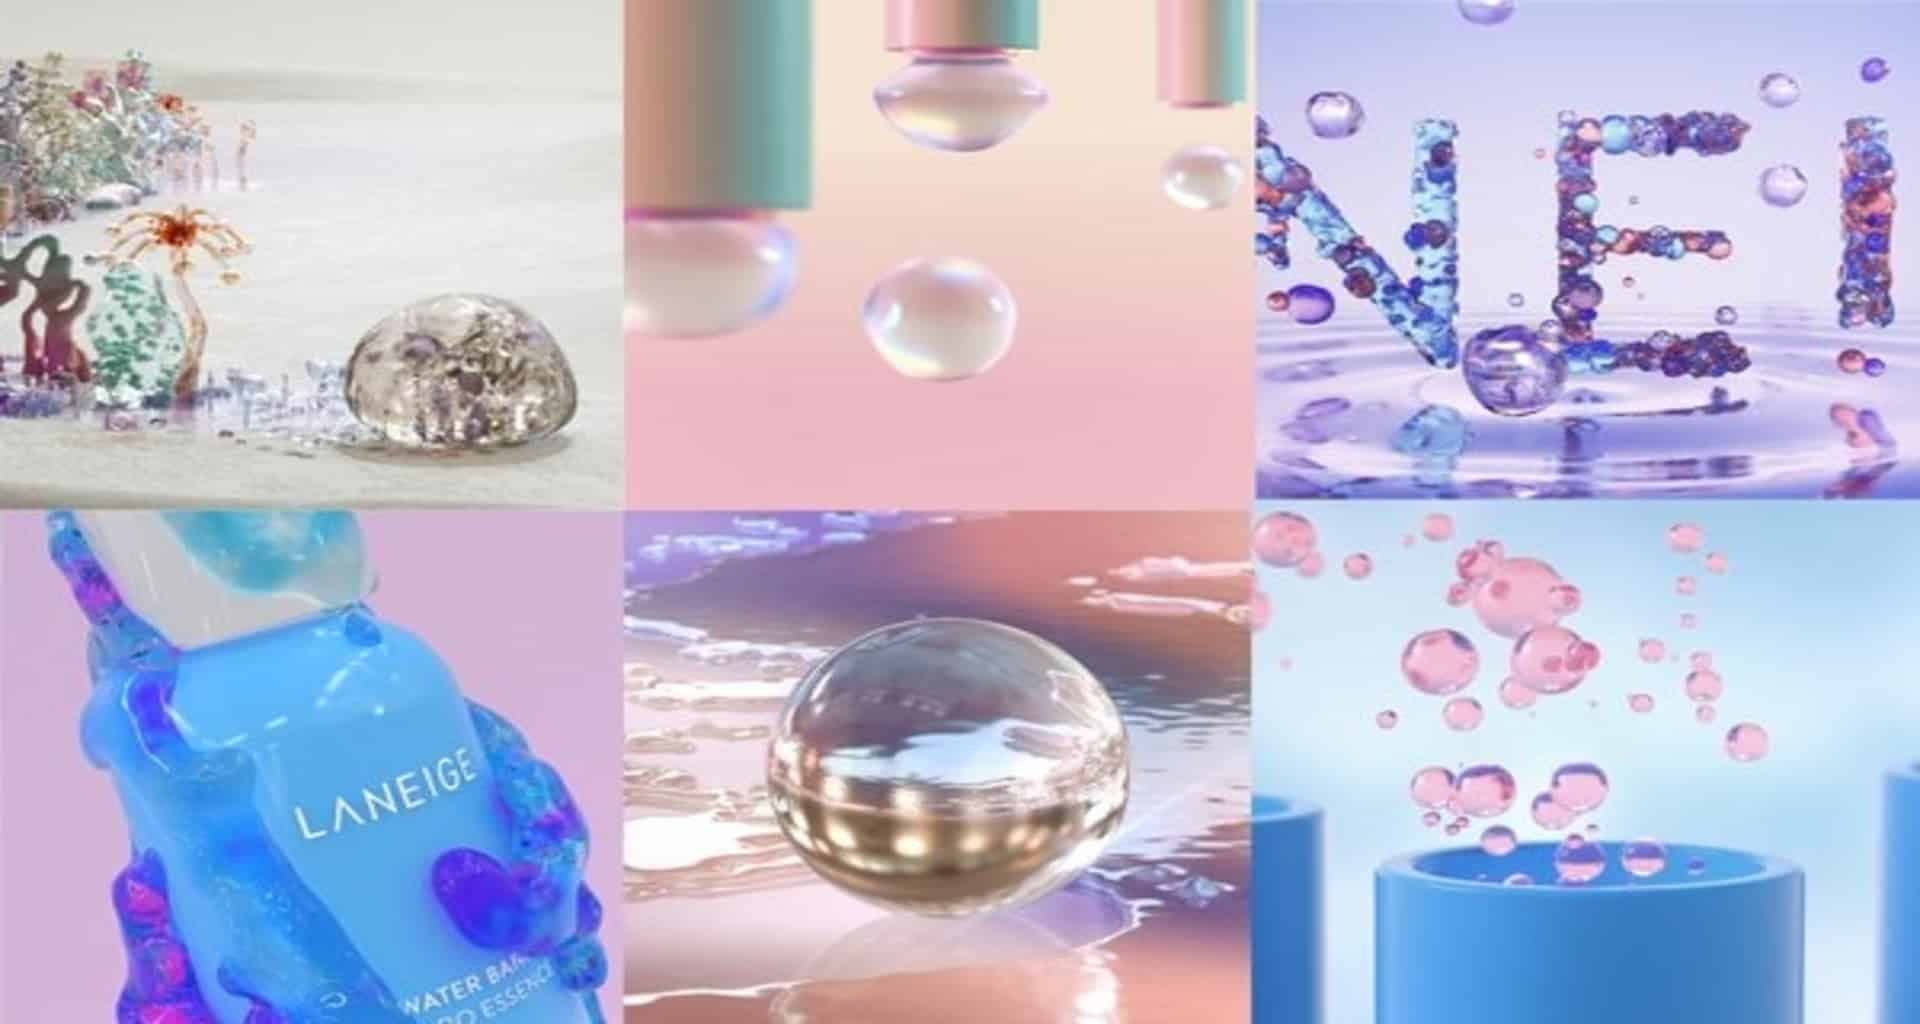 Laneige unveils Luminous Beauty in the form of video art